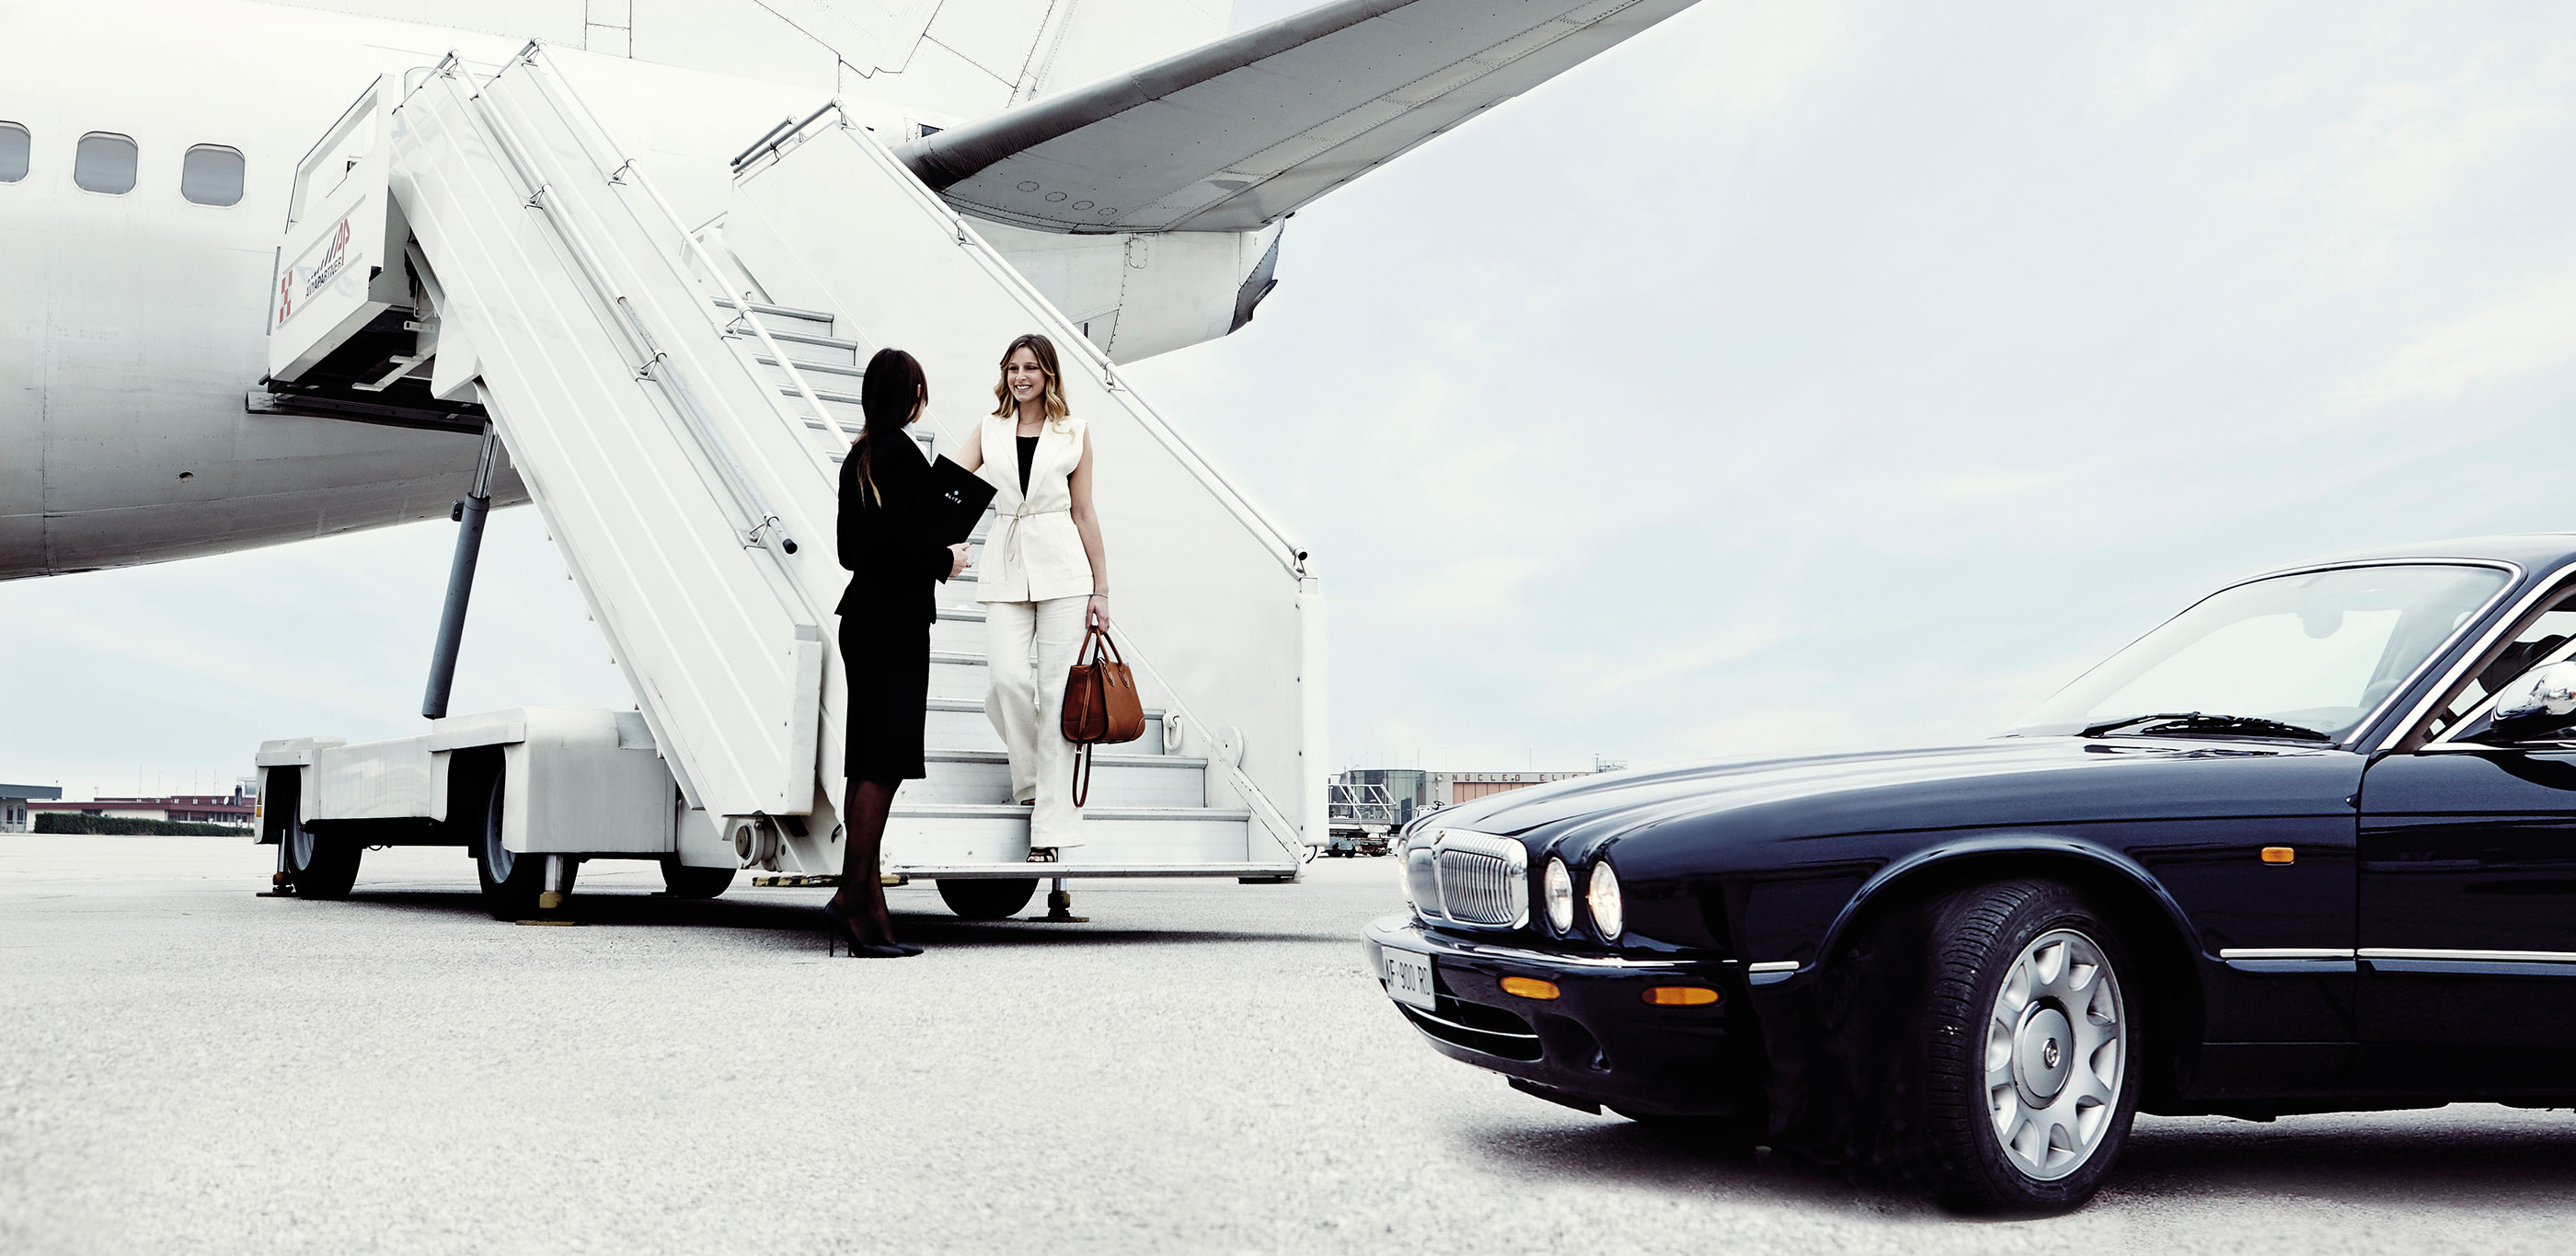 Venice Airport VIP Meet & Greet service